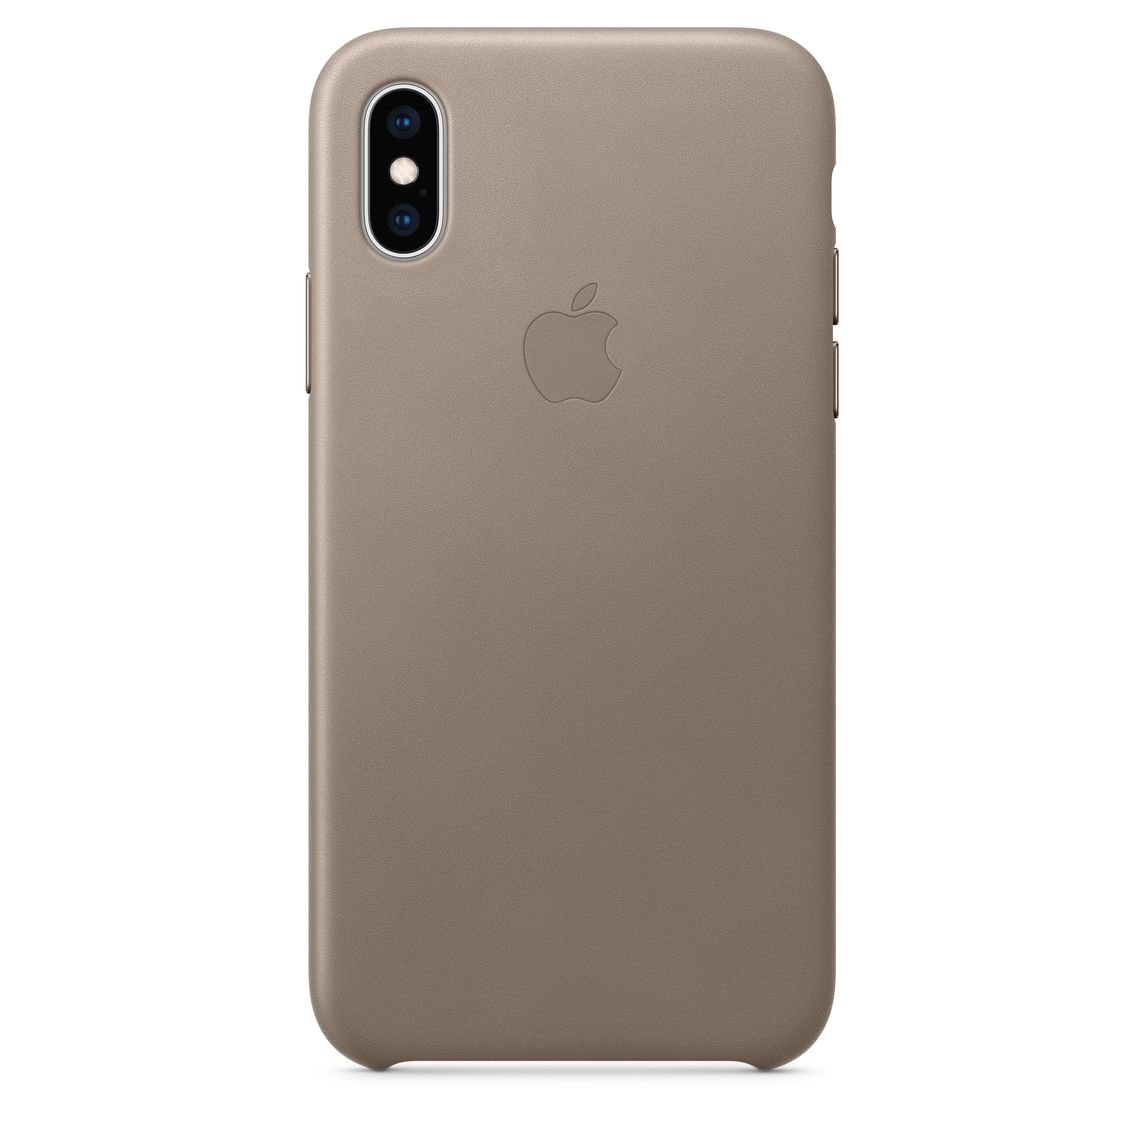 size 40 db81d 3979e iPhone XS Leather Case - Taupe